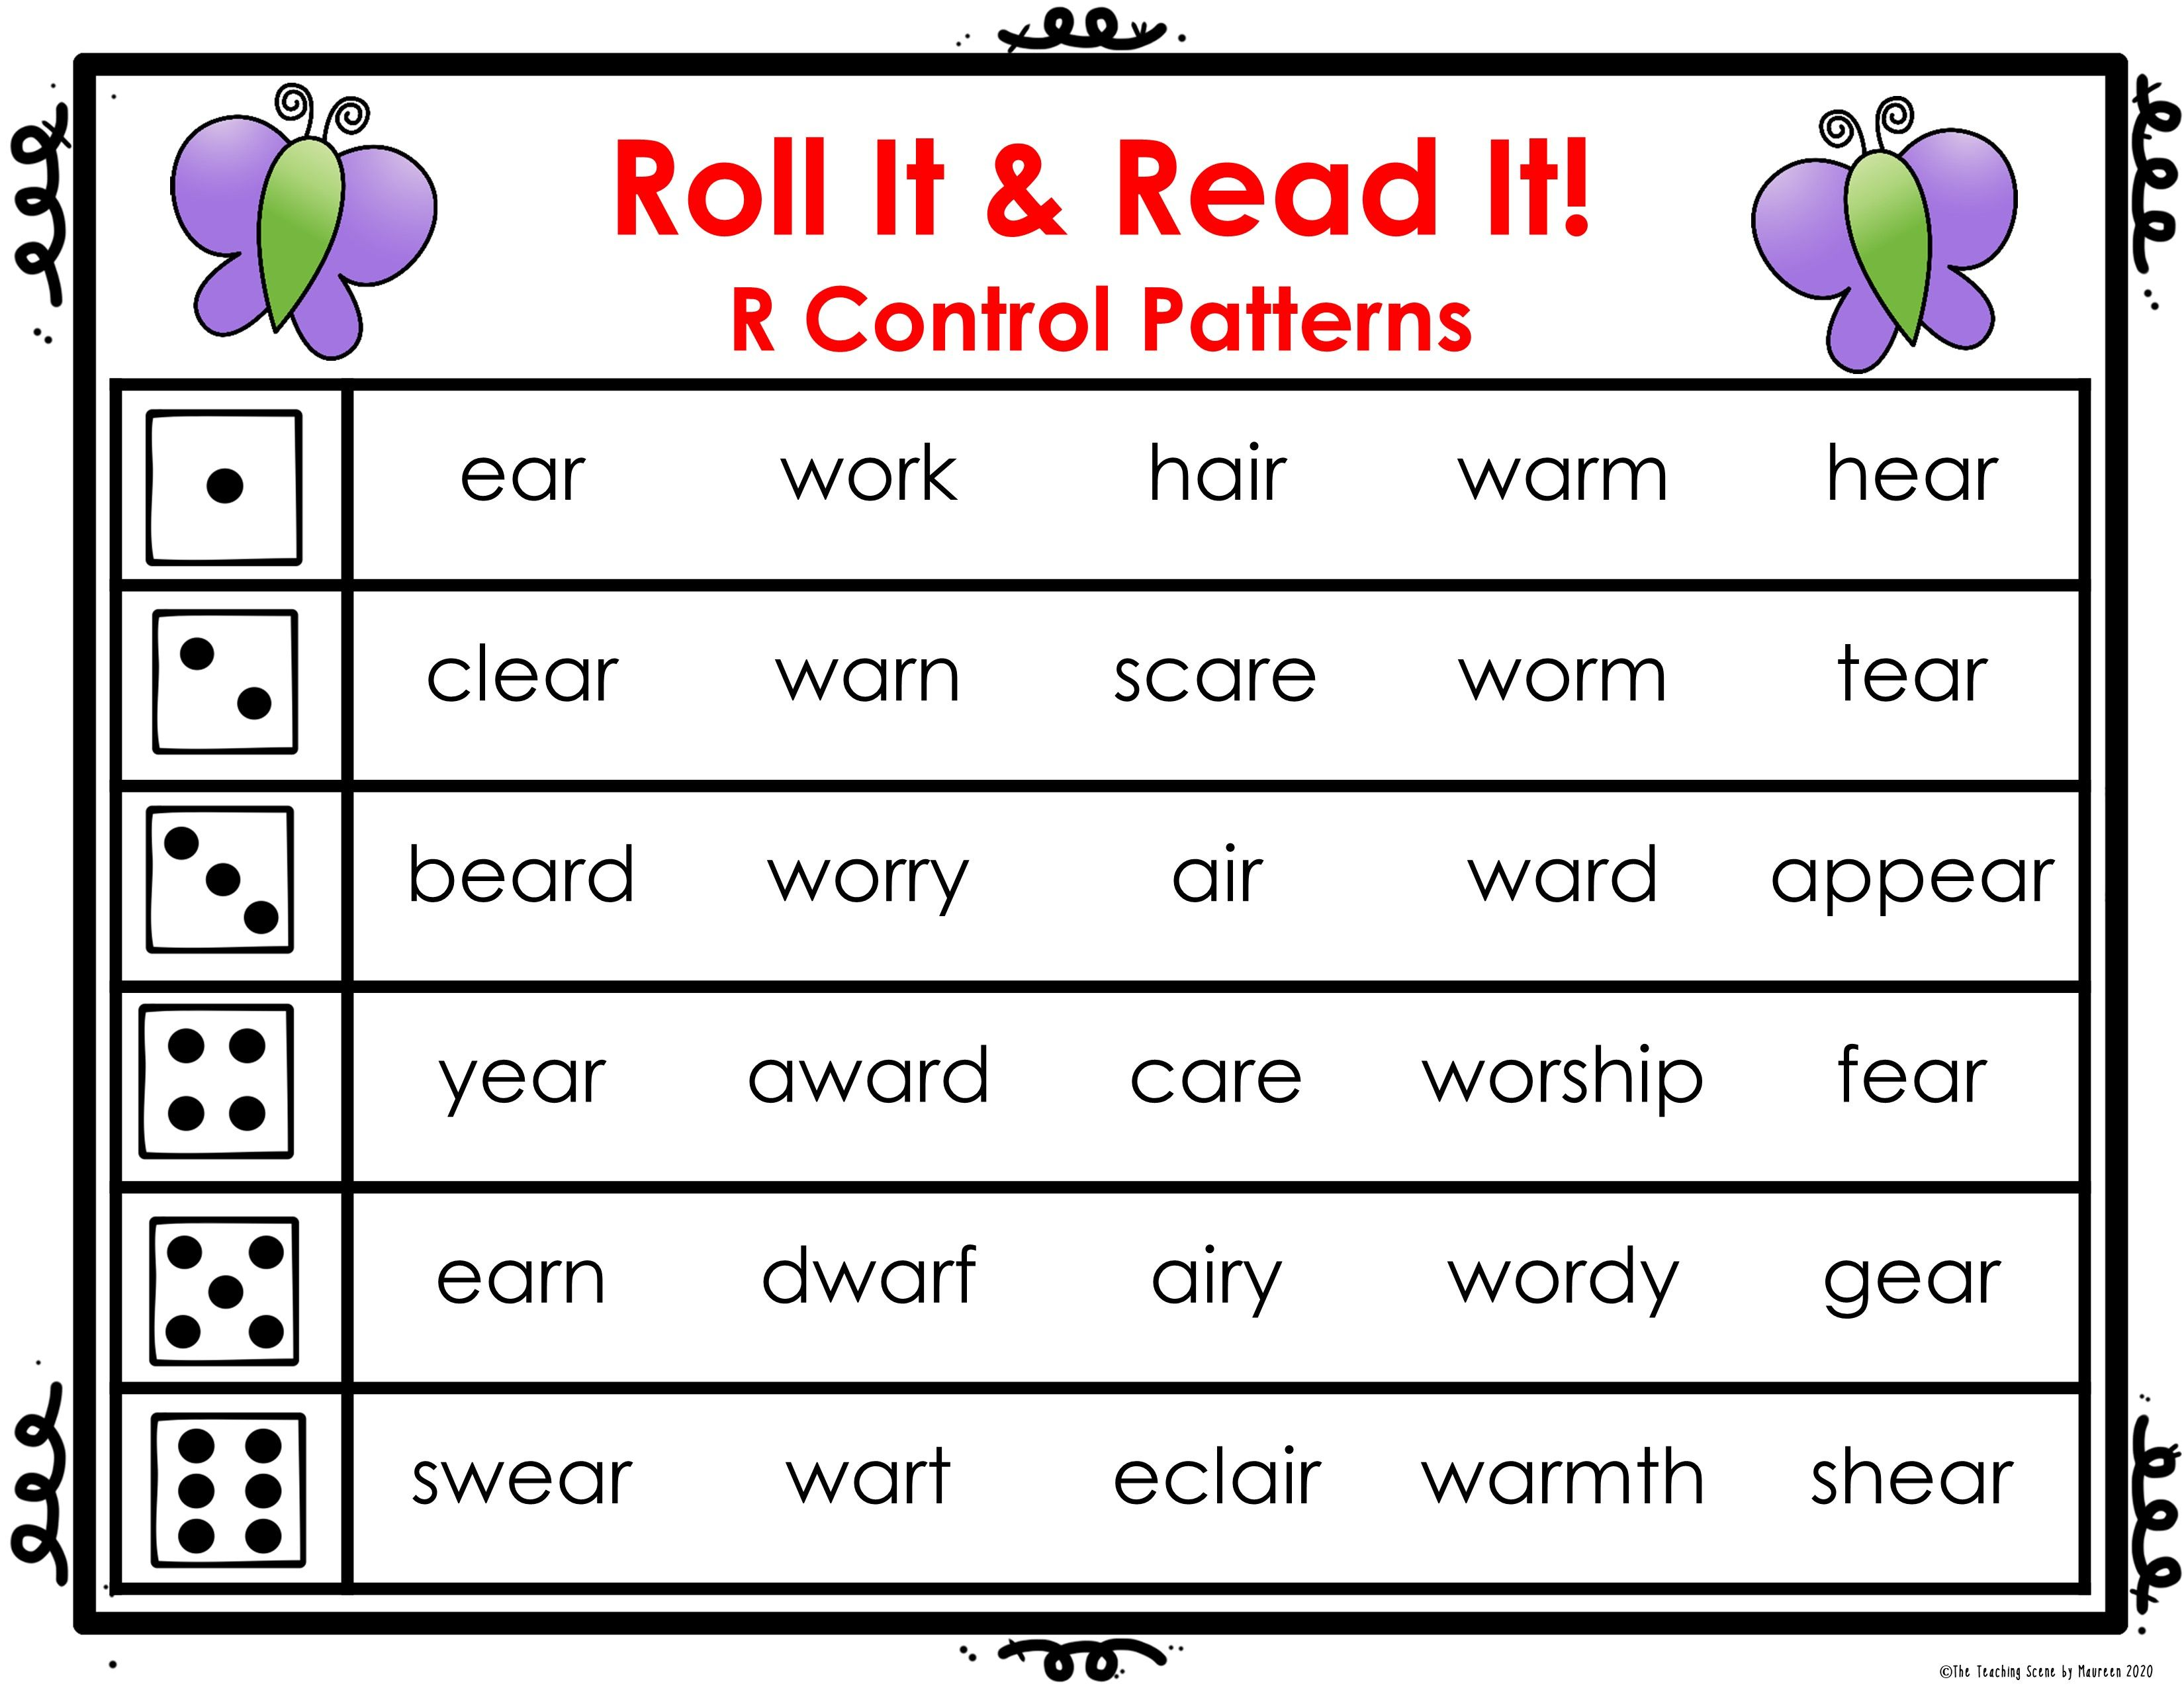 R Control Patterns Roll It Read It Game Cards War Wor